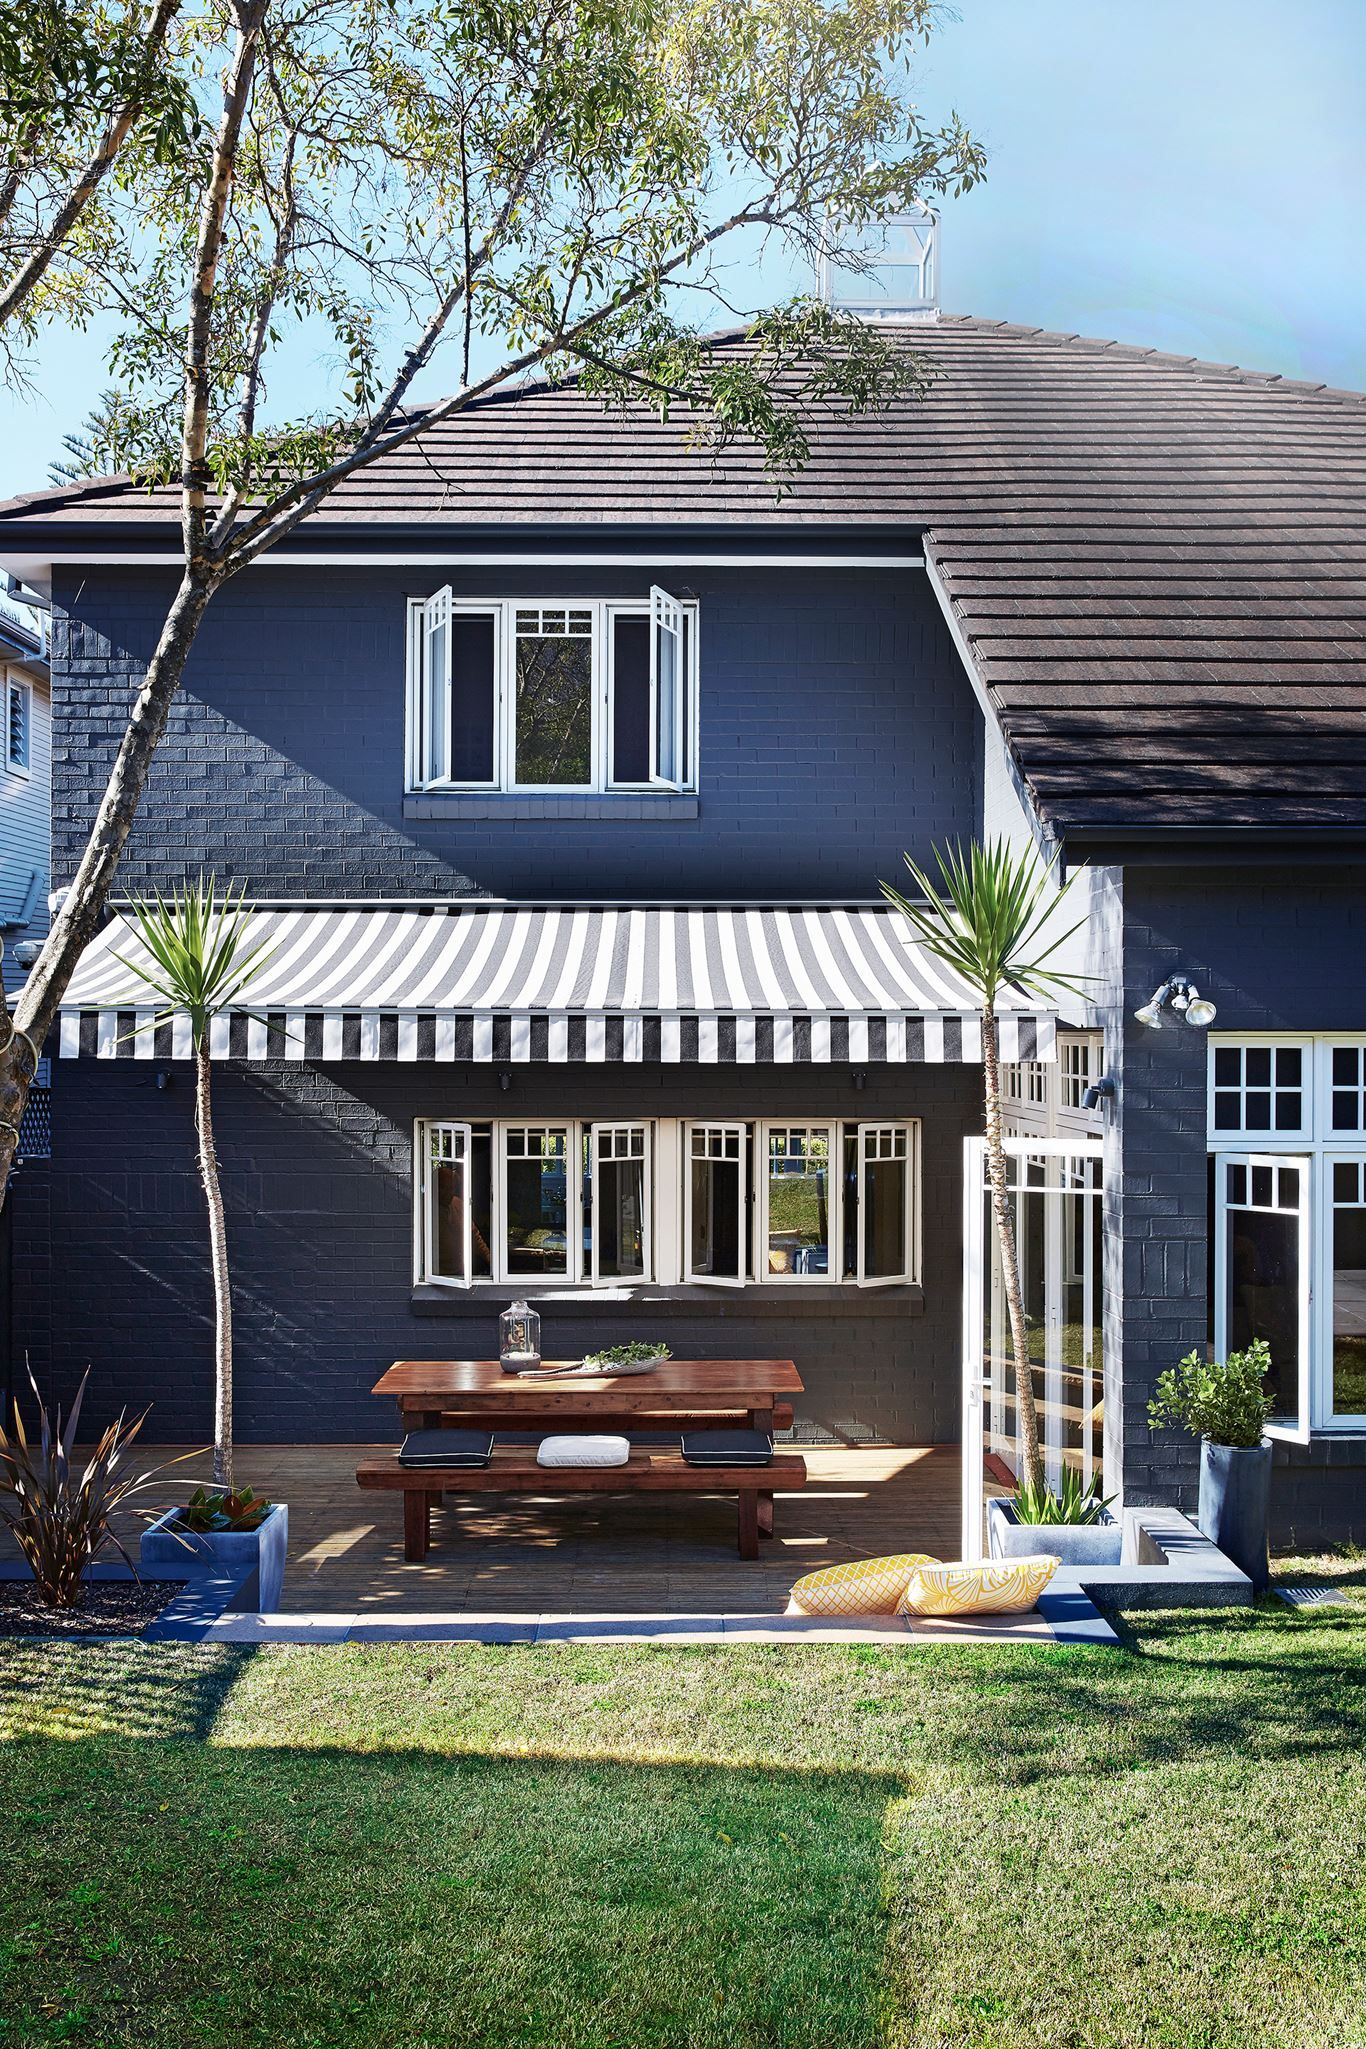 Victorian house colorful interiors for a classy exterior south yarra - Modern Hamptons Style Home In Sydney